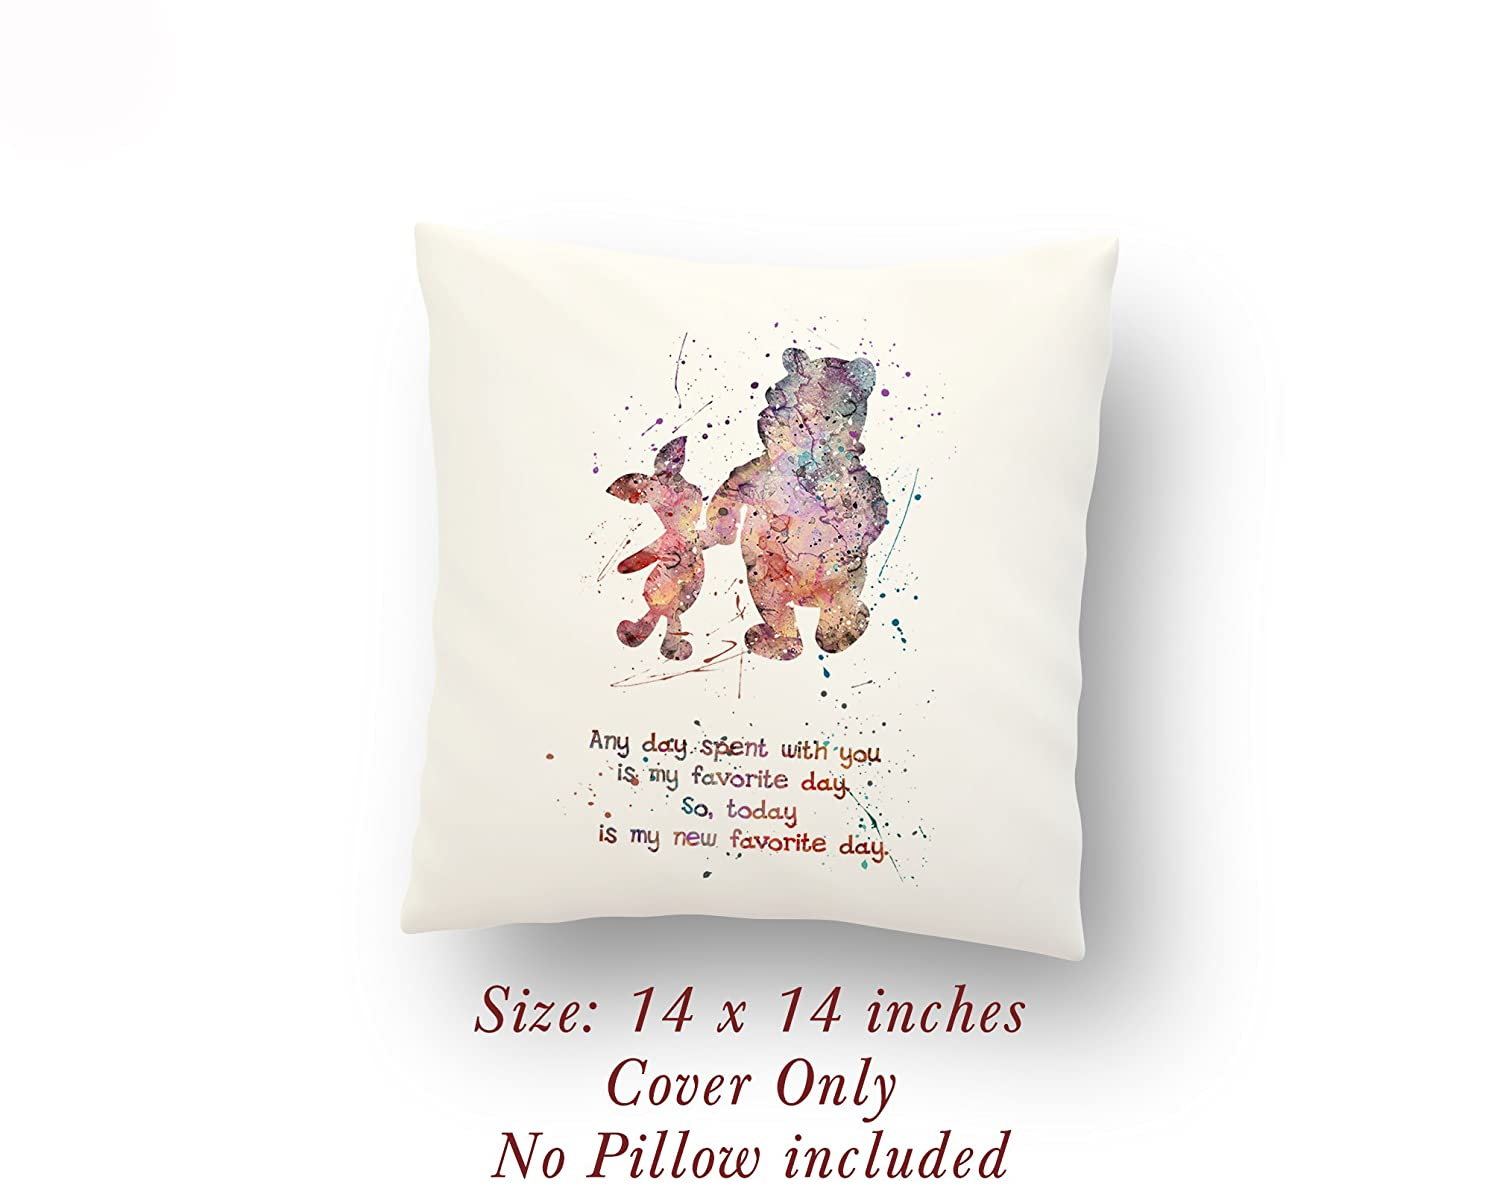 d8b17067a93b Amazon.com  Winnie-the-Pooh and Piglet Quote 14 x 14 inches Pillow Cover   Handmade